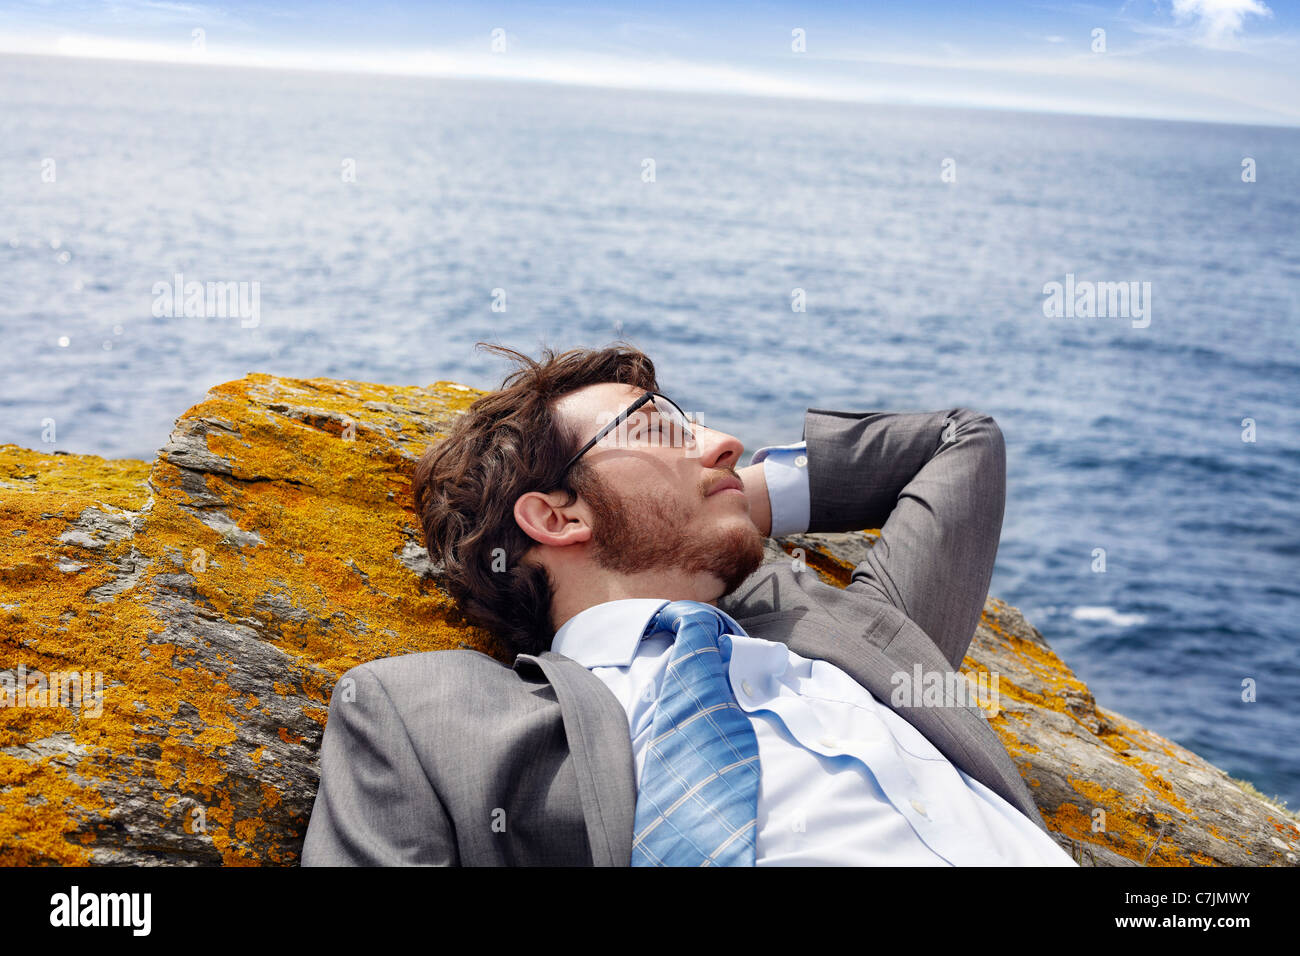 Businessman relaxing on cliff - Stock Image